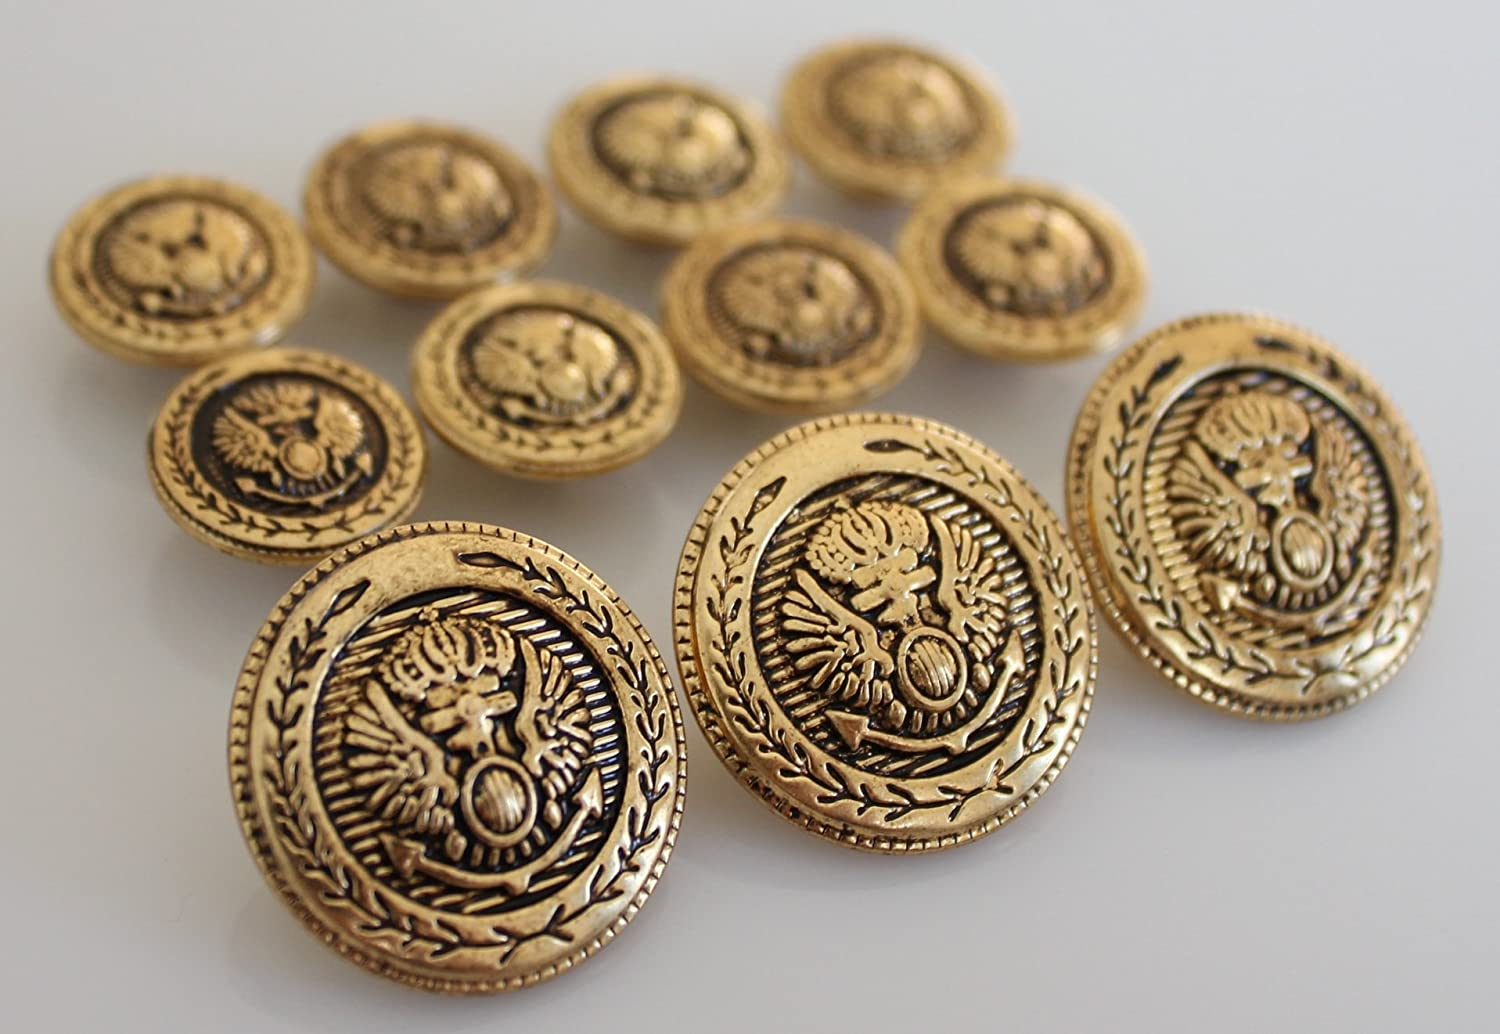 YCEE ANTIQUE GOLD Finished ~CROWNED EAGLE CREST~ METAL BLAZER BUTTON SET ~ 11-Piece Set of Shank Style Fashion Buttons For Single Breasted Blazers, Sport Coats, Jackets & Uniforms